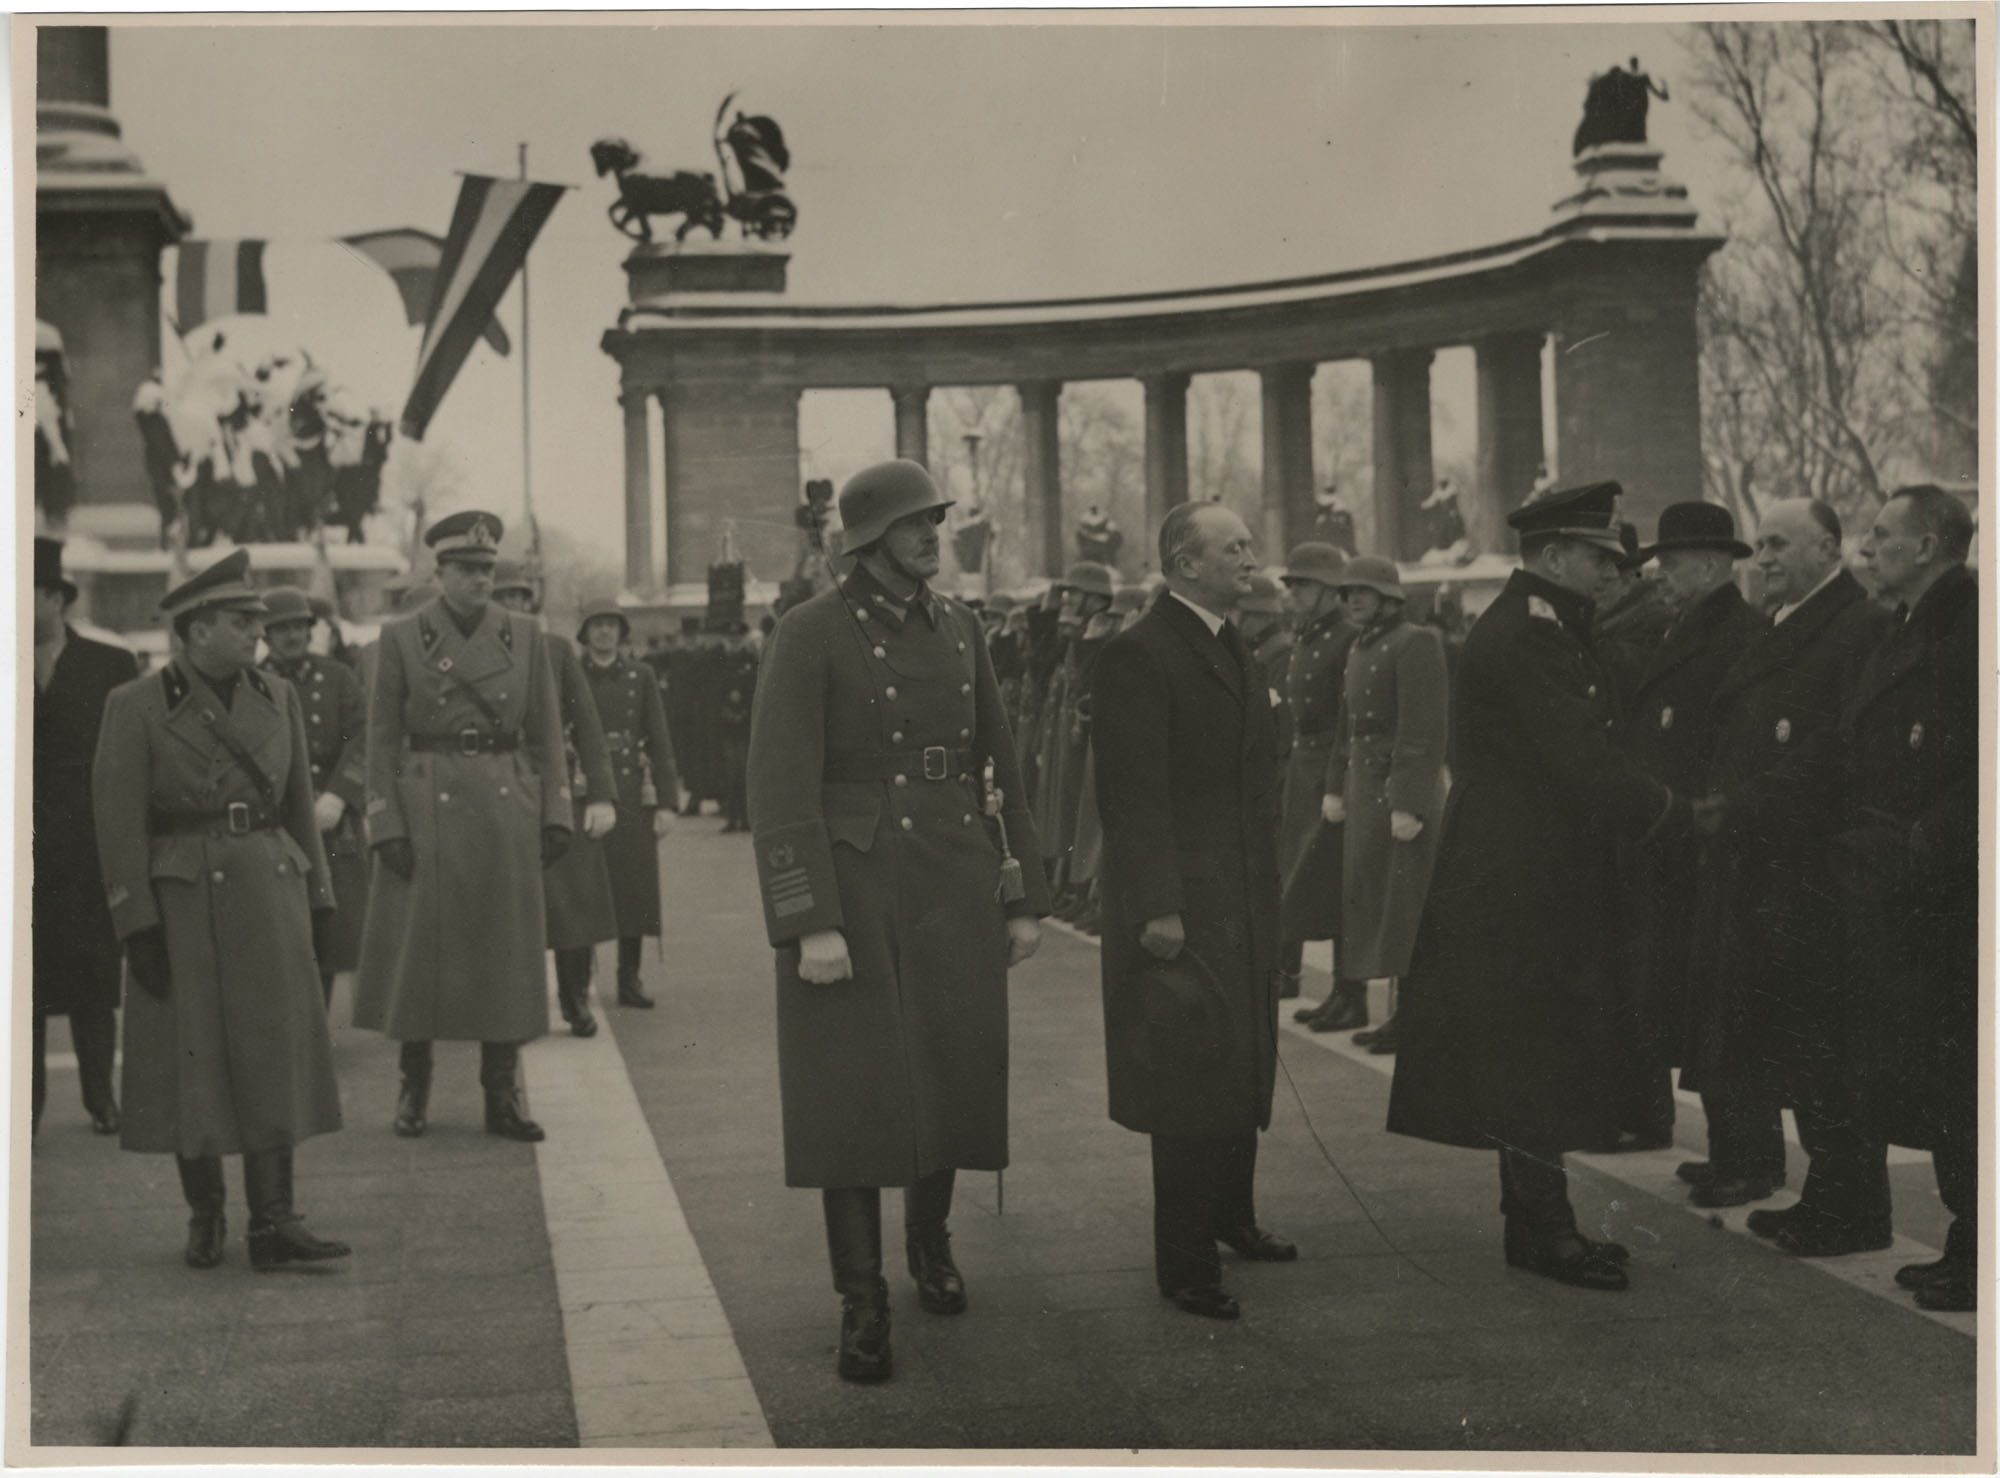 Mario Pansa and military officials in Budapest, Hungary, Photograph 8